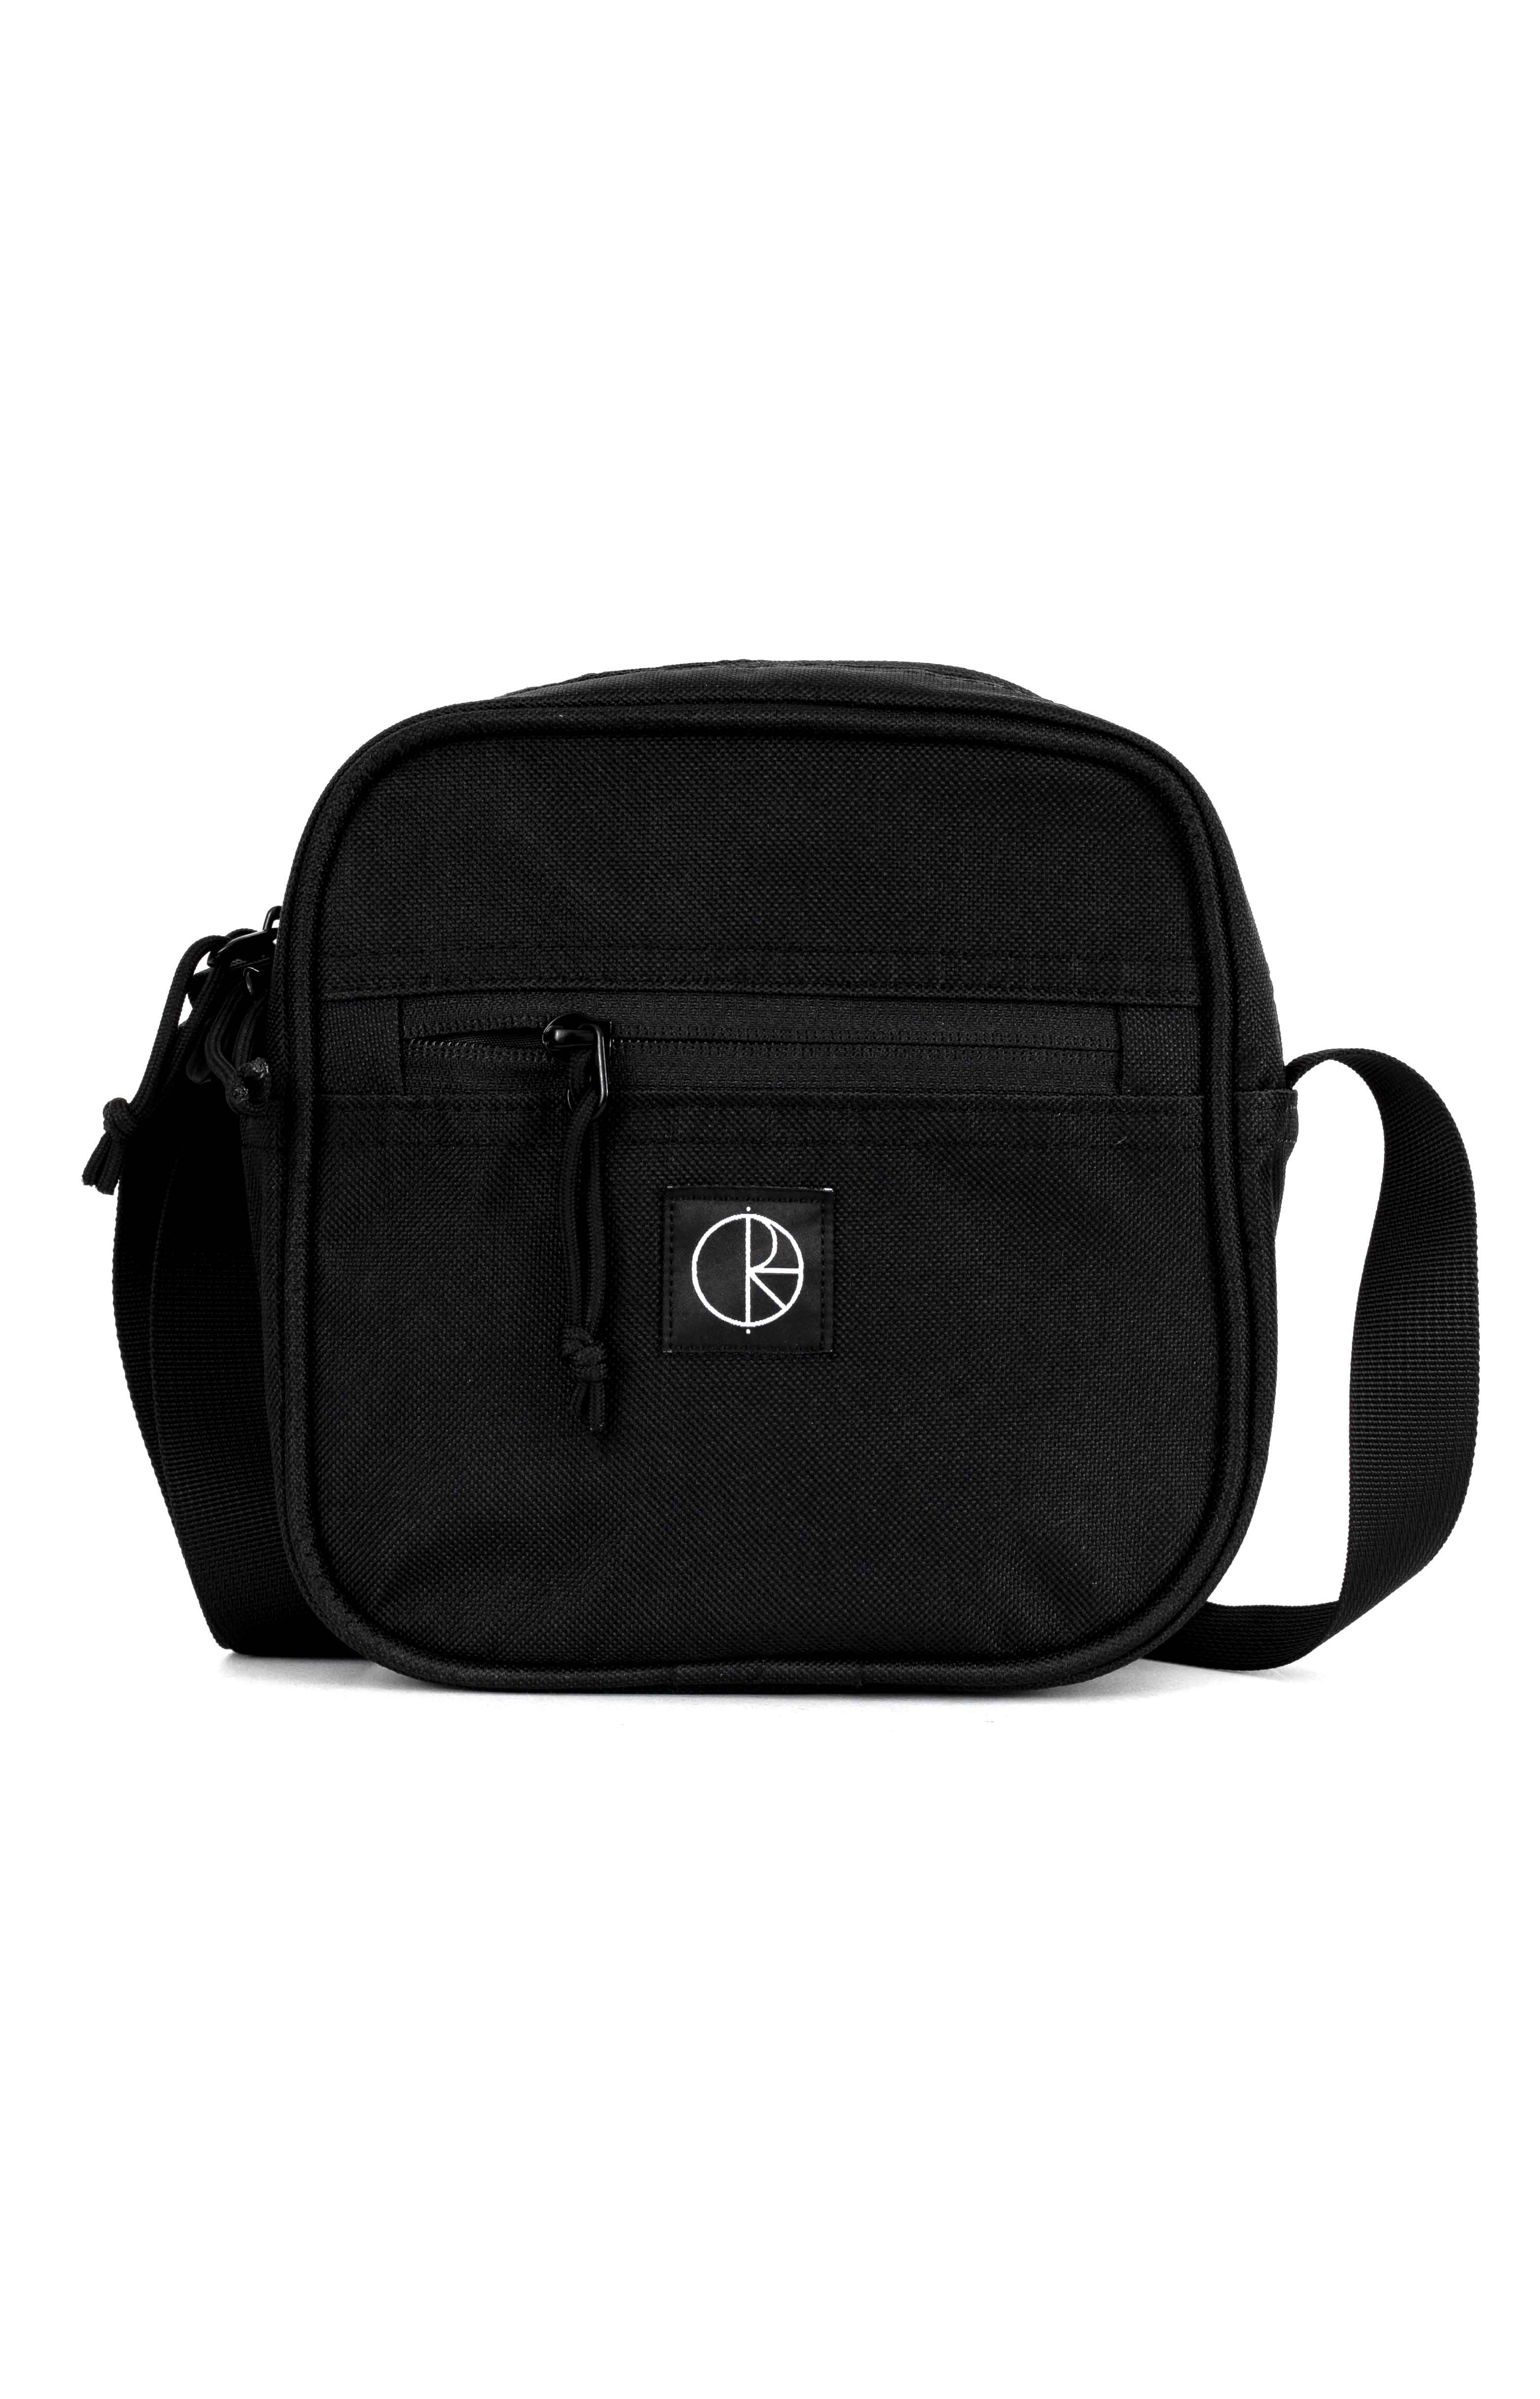 Cordura Dealer Bag - Black